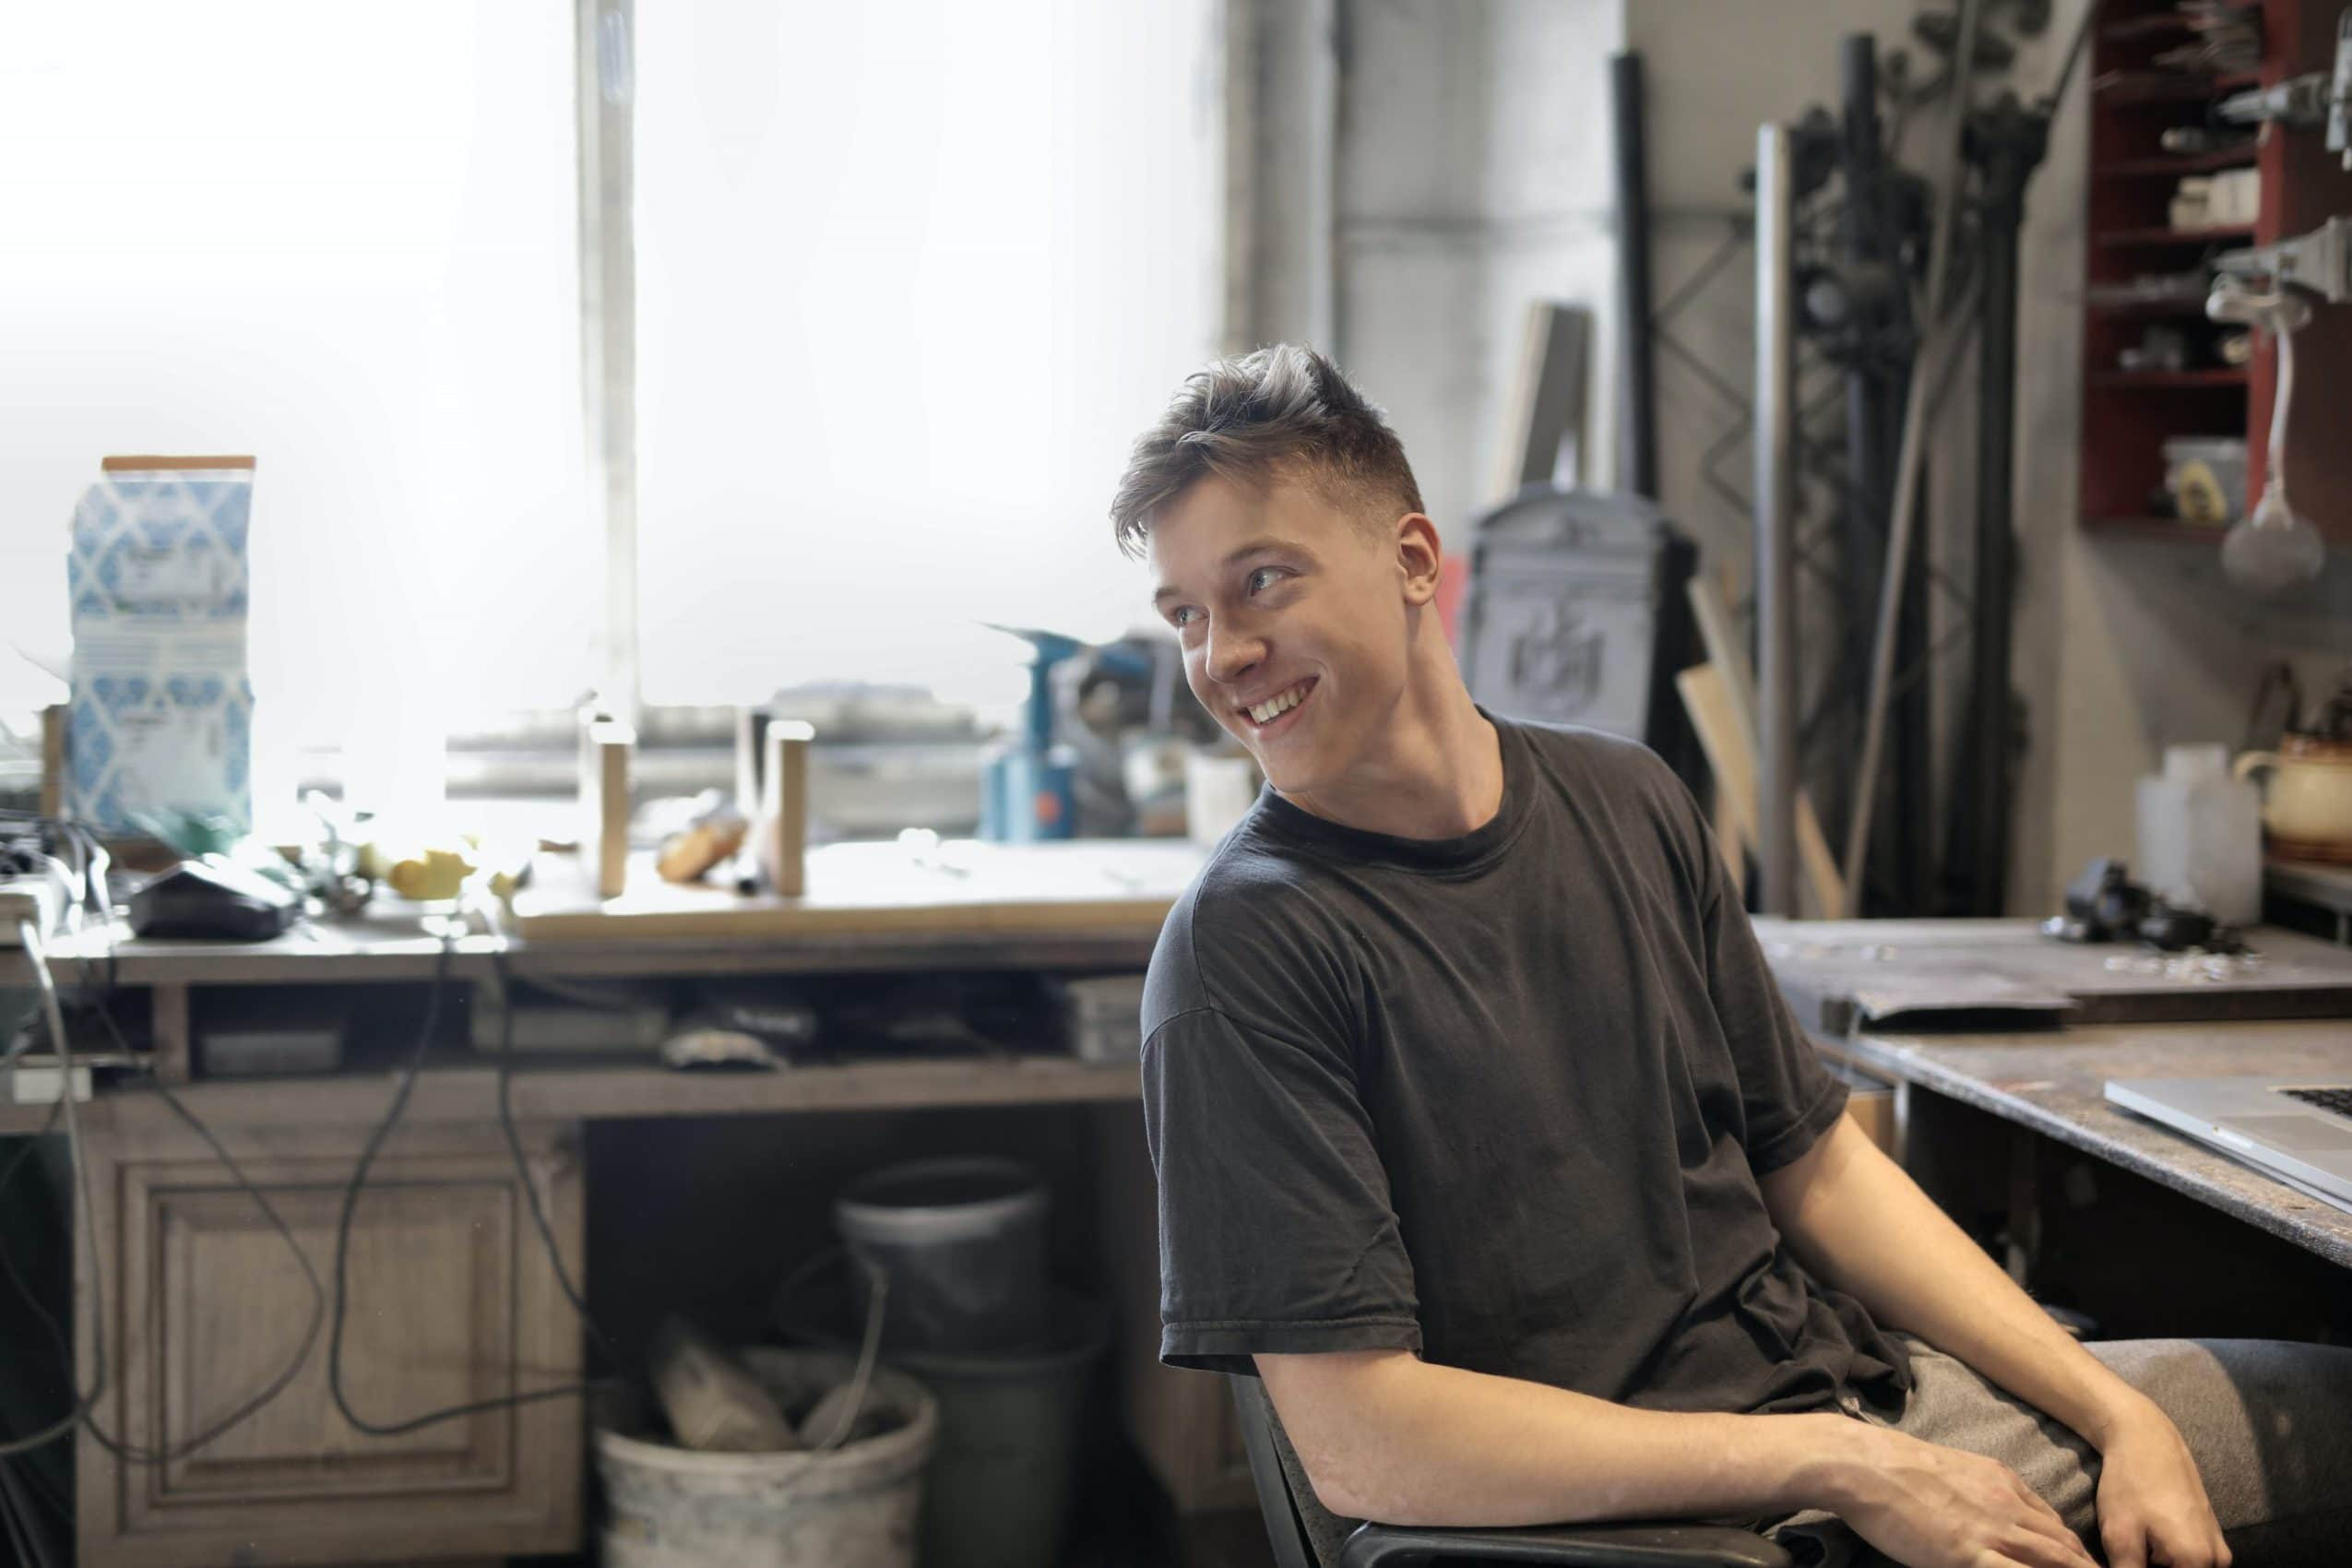 cheerful-man-sitting-at-table-in-workshop-3844524